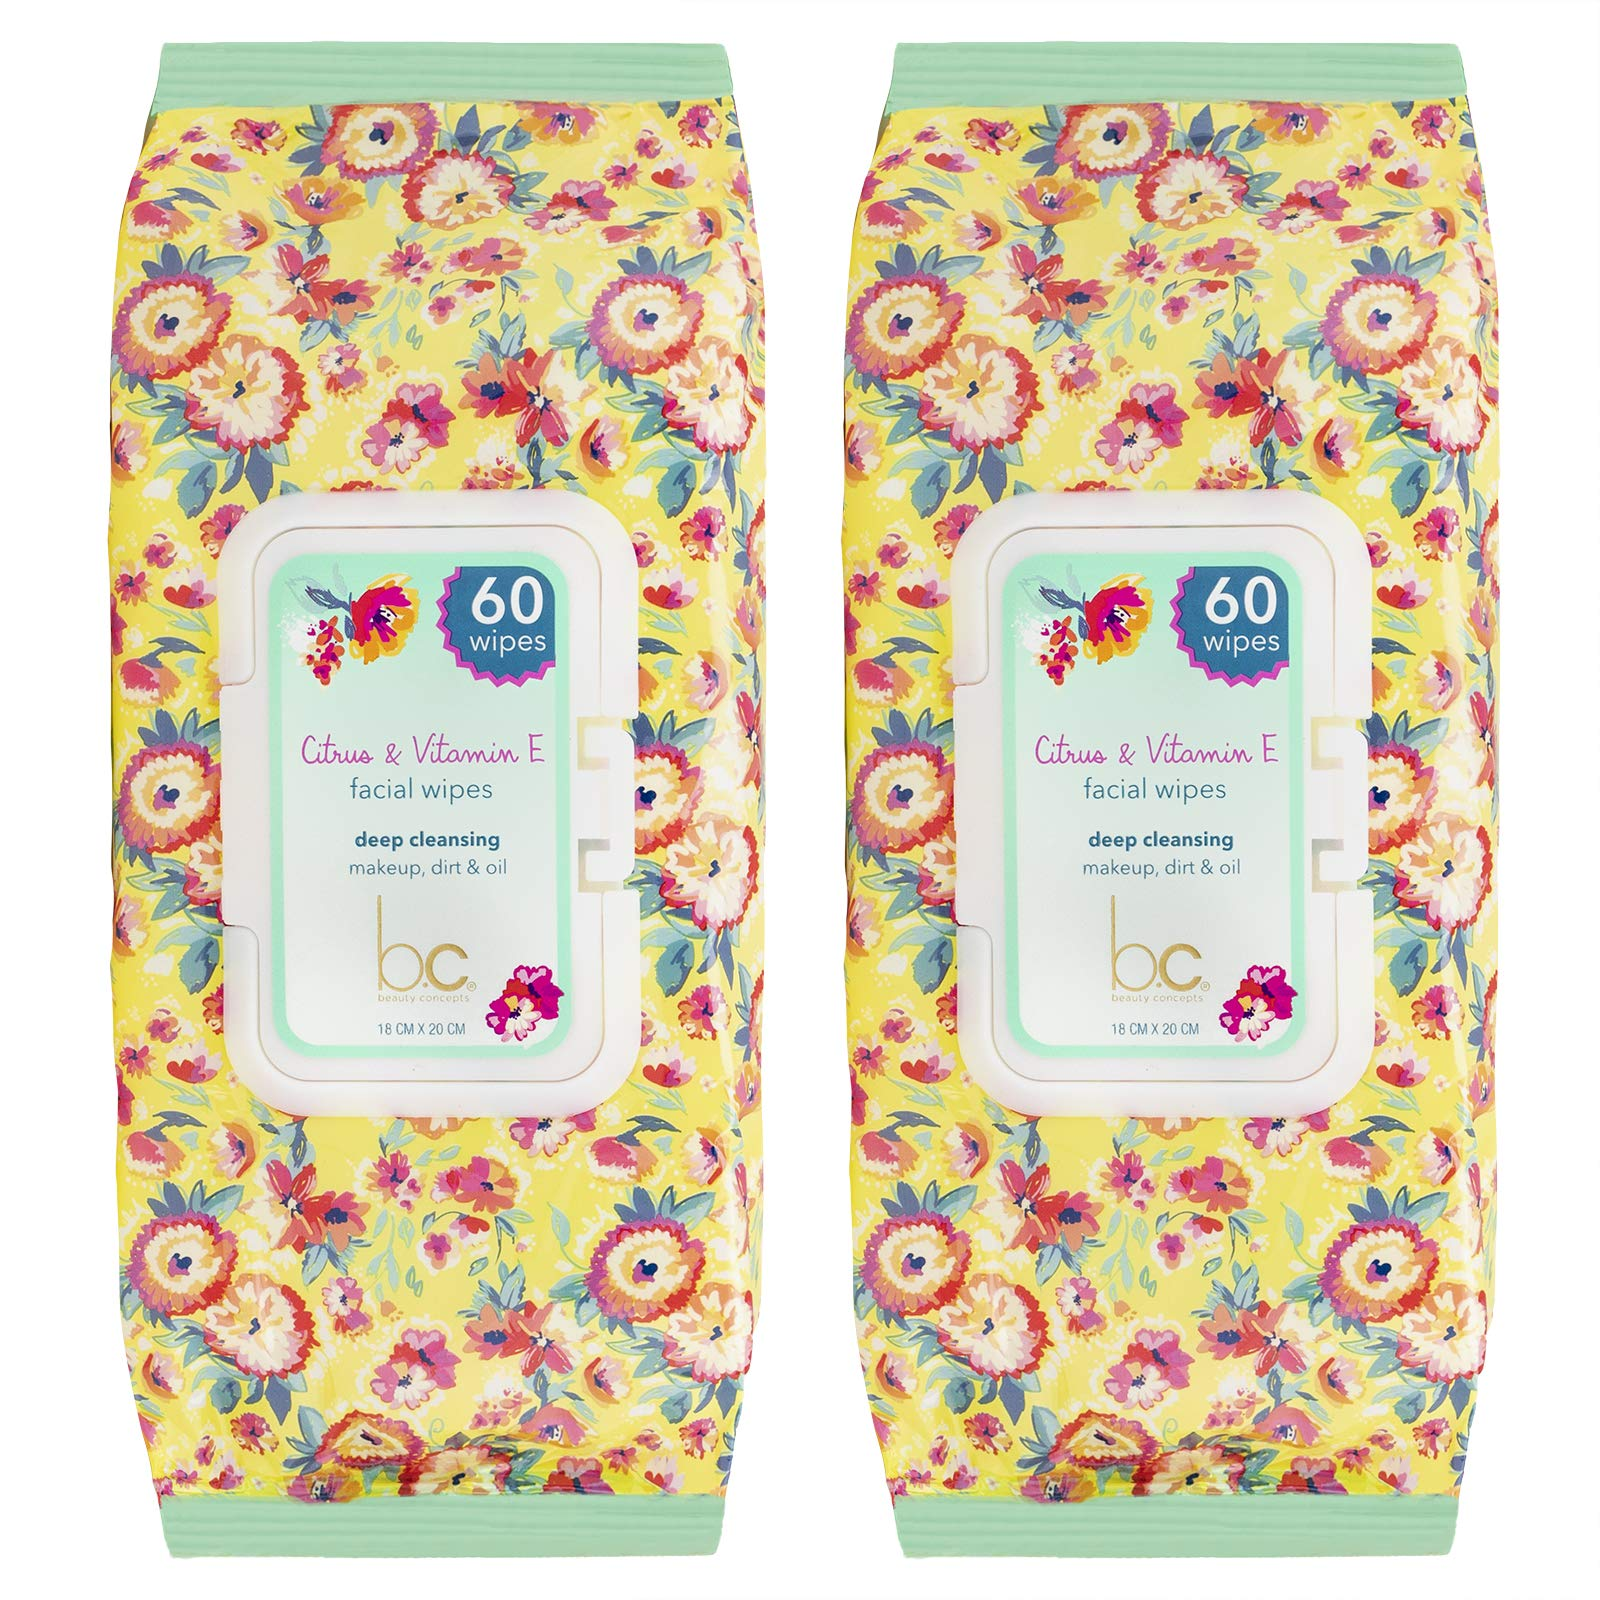 Beauty Concepts - 2 Packs (60 Count per Pack) Citrus & Vitamin E Facial Cleansing Wipes